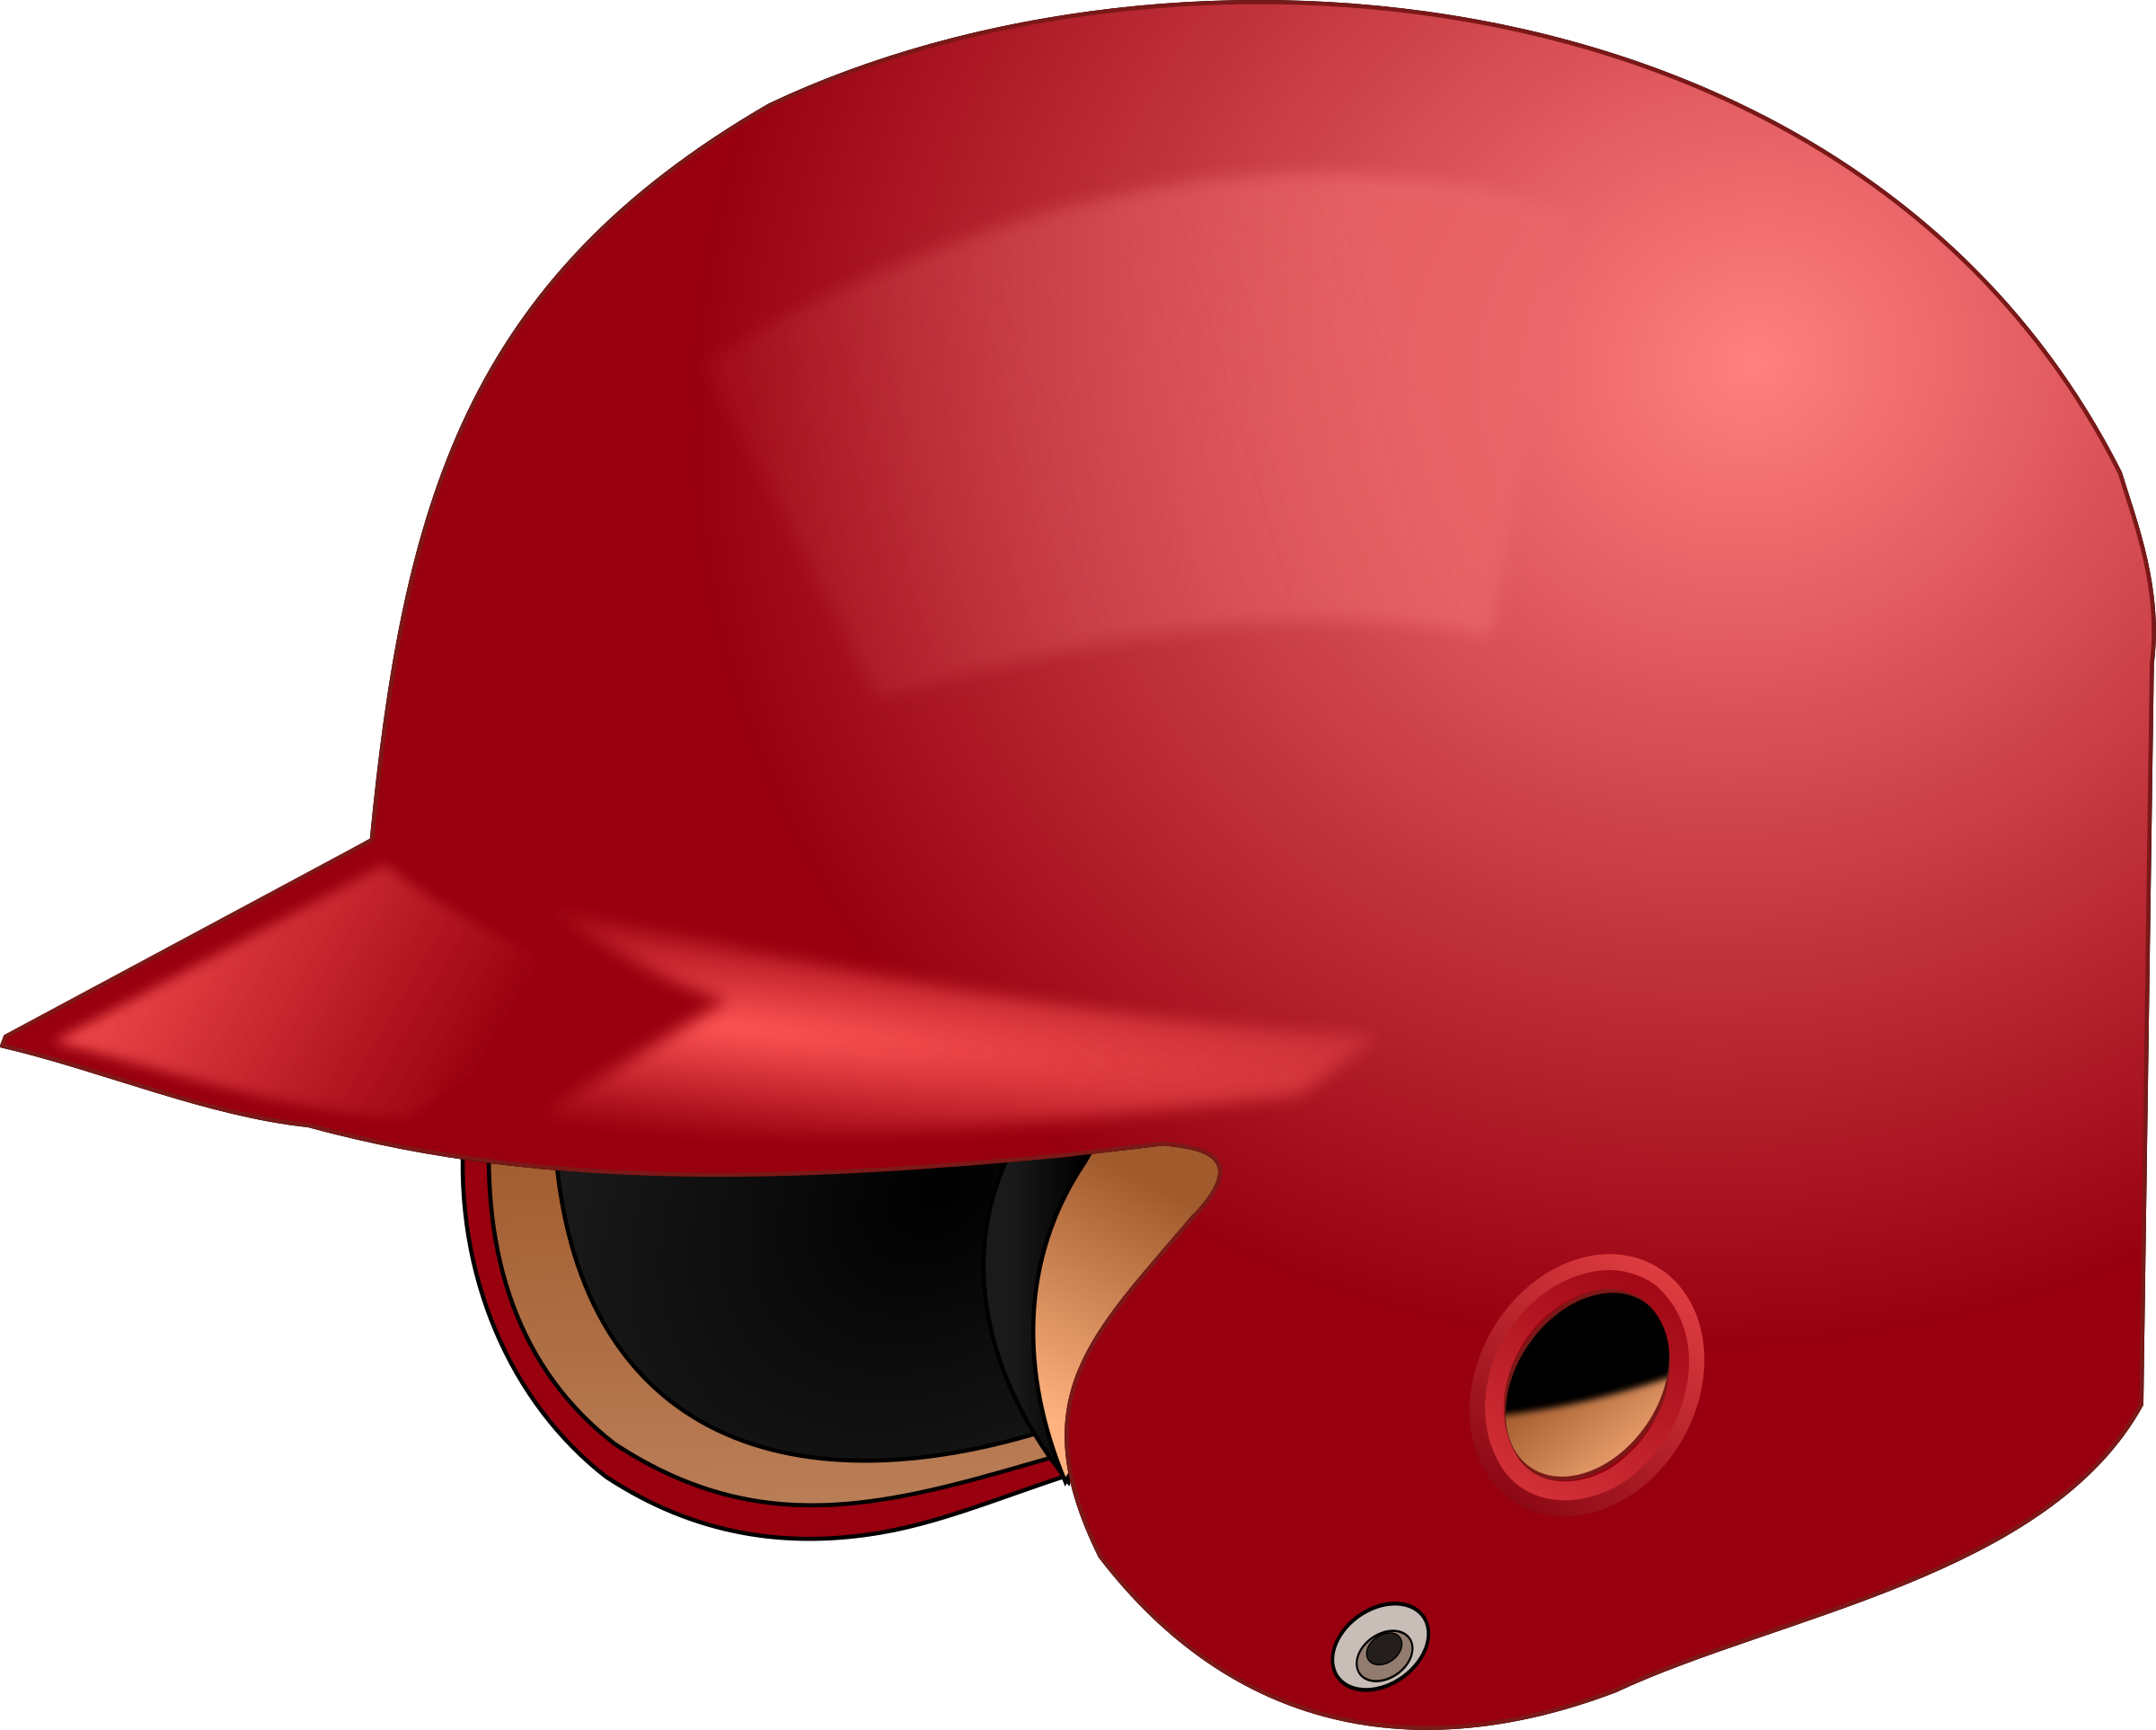 Baseball Helmet by studio_hades